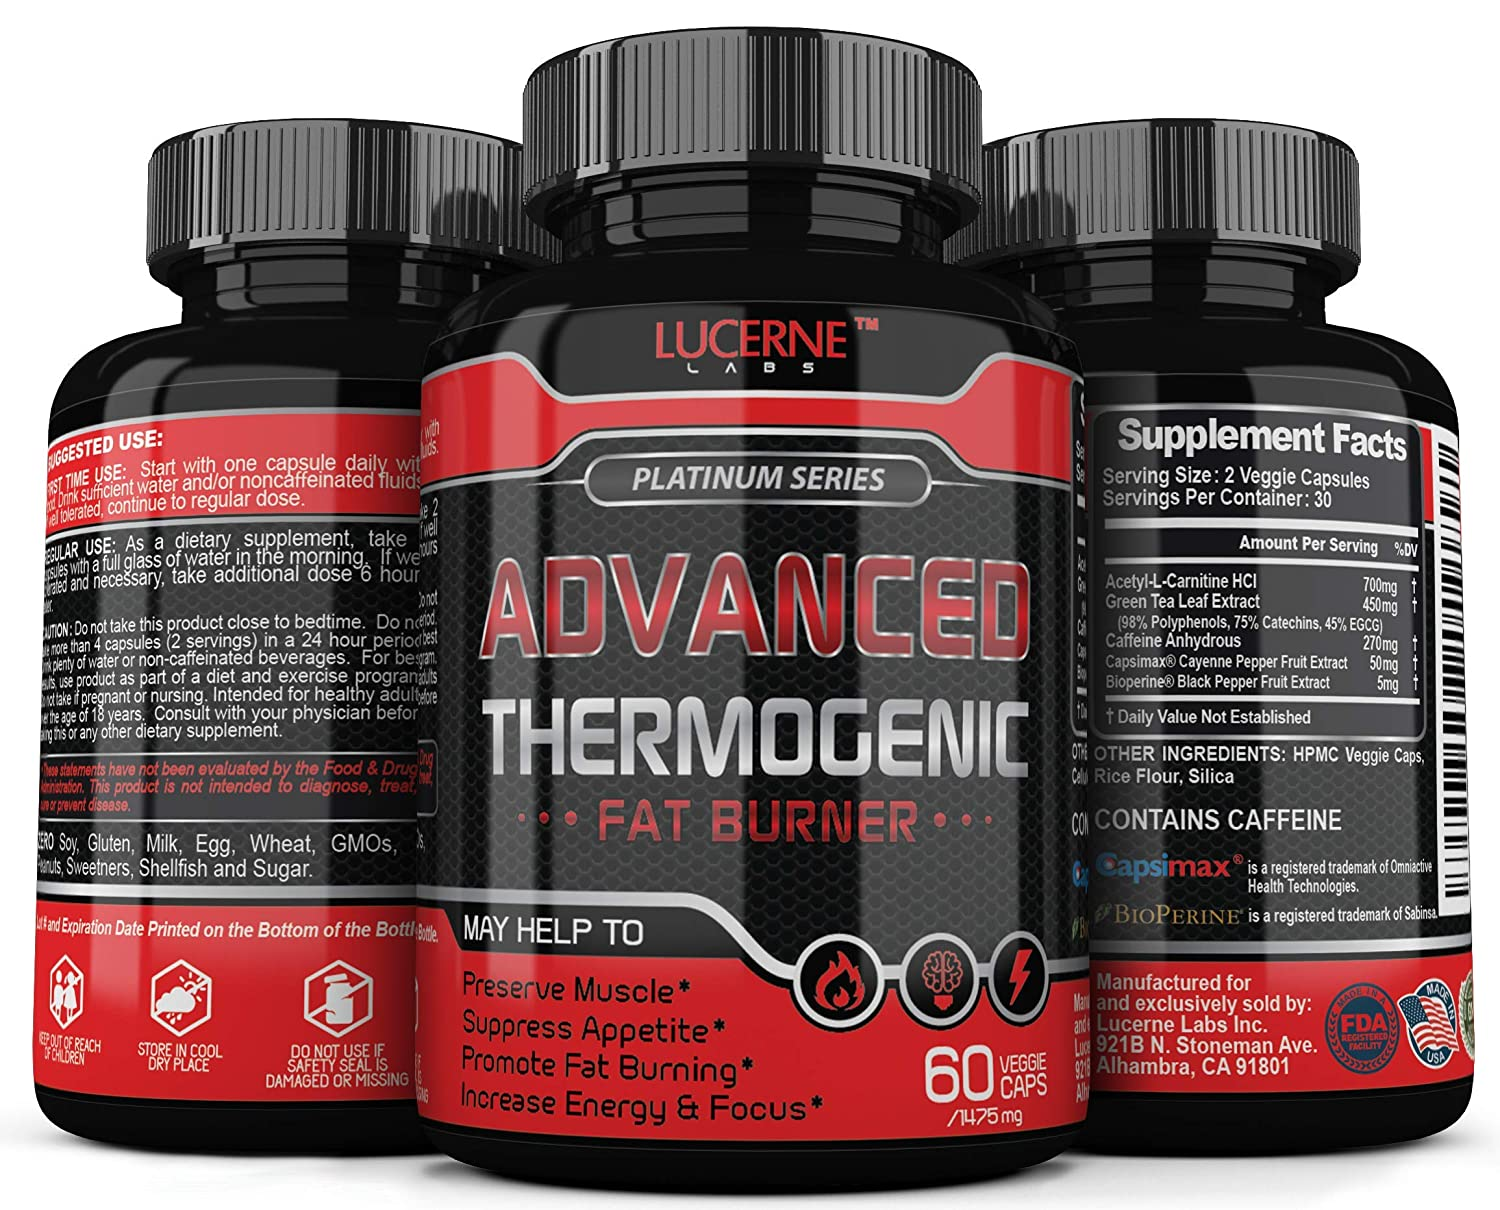 Advanced Fat Burner Appetite Suppressant – Weight Loss Supplement for Women Men, Acetyl L Carnitine, Energy Booster, Metabolism Booster for Weight Loss, Belly Fat Burner, Keto Friendly